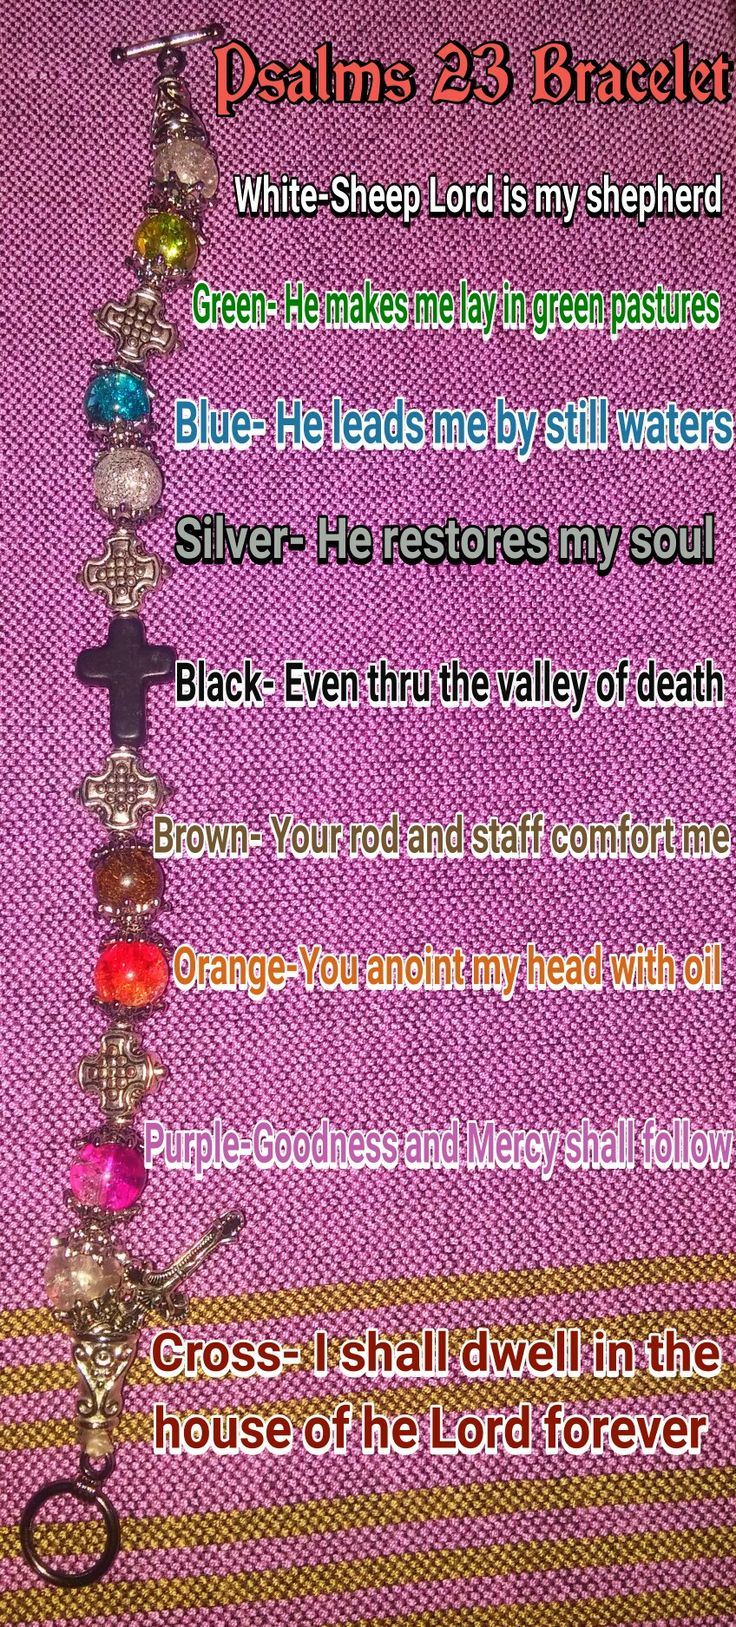 9 best ps 23 braclet images on Pinterest   Psalm 23, Jewellery ...